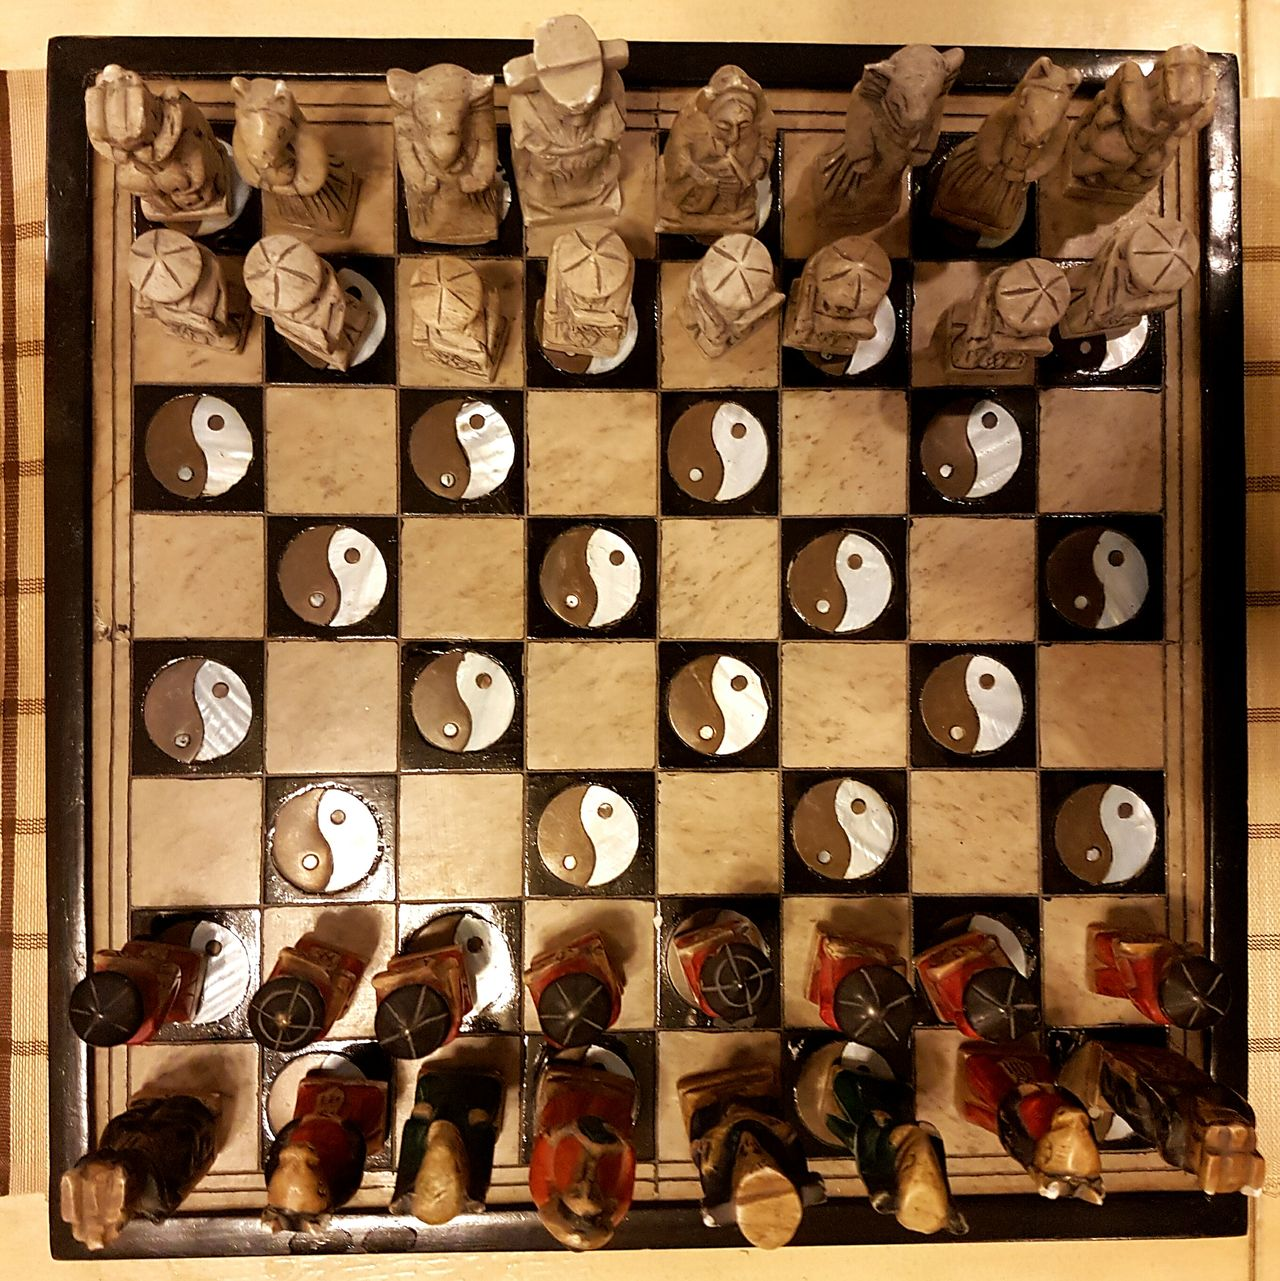 Arrangement Indoors  In A Row No People Close-up Chessboard Chess Chesspieces Chessgame Chess Set Chess Board Chineese Chess Chinese Art Chineeseart Ying And Yang Ying & Yang